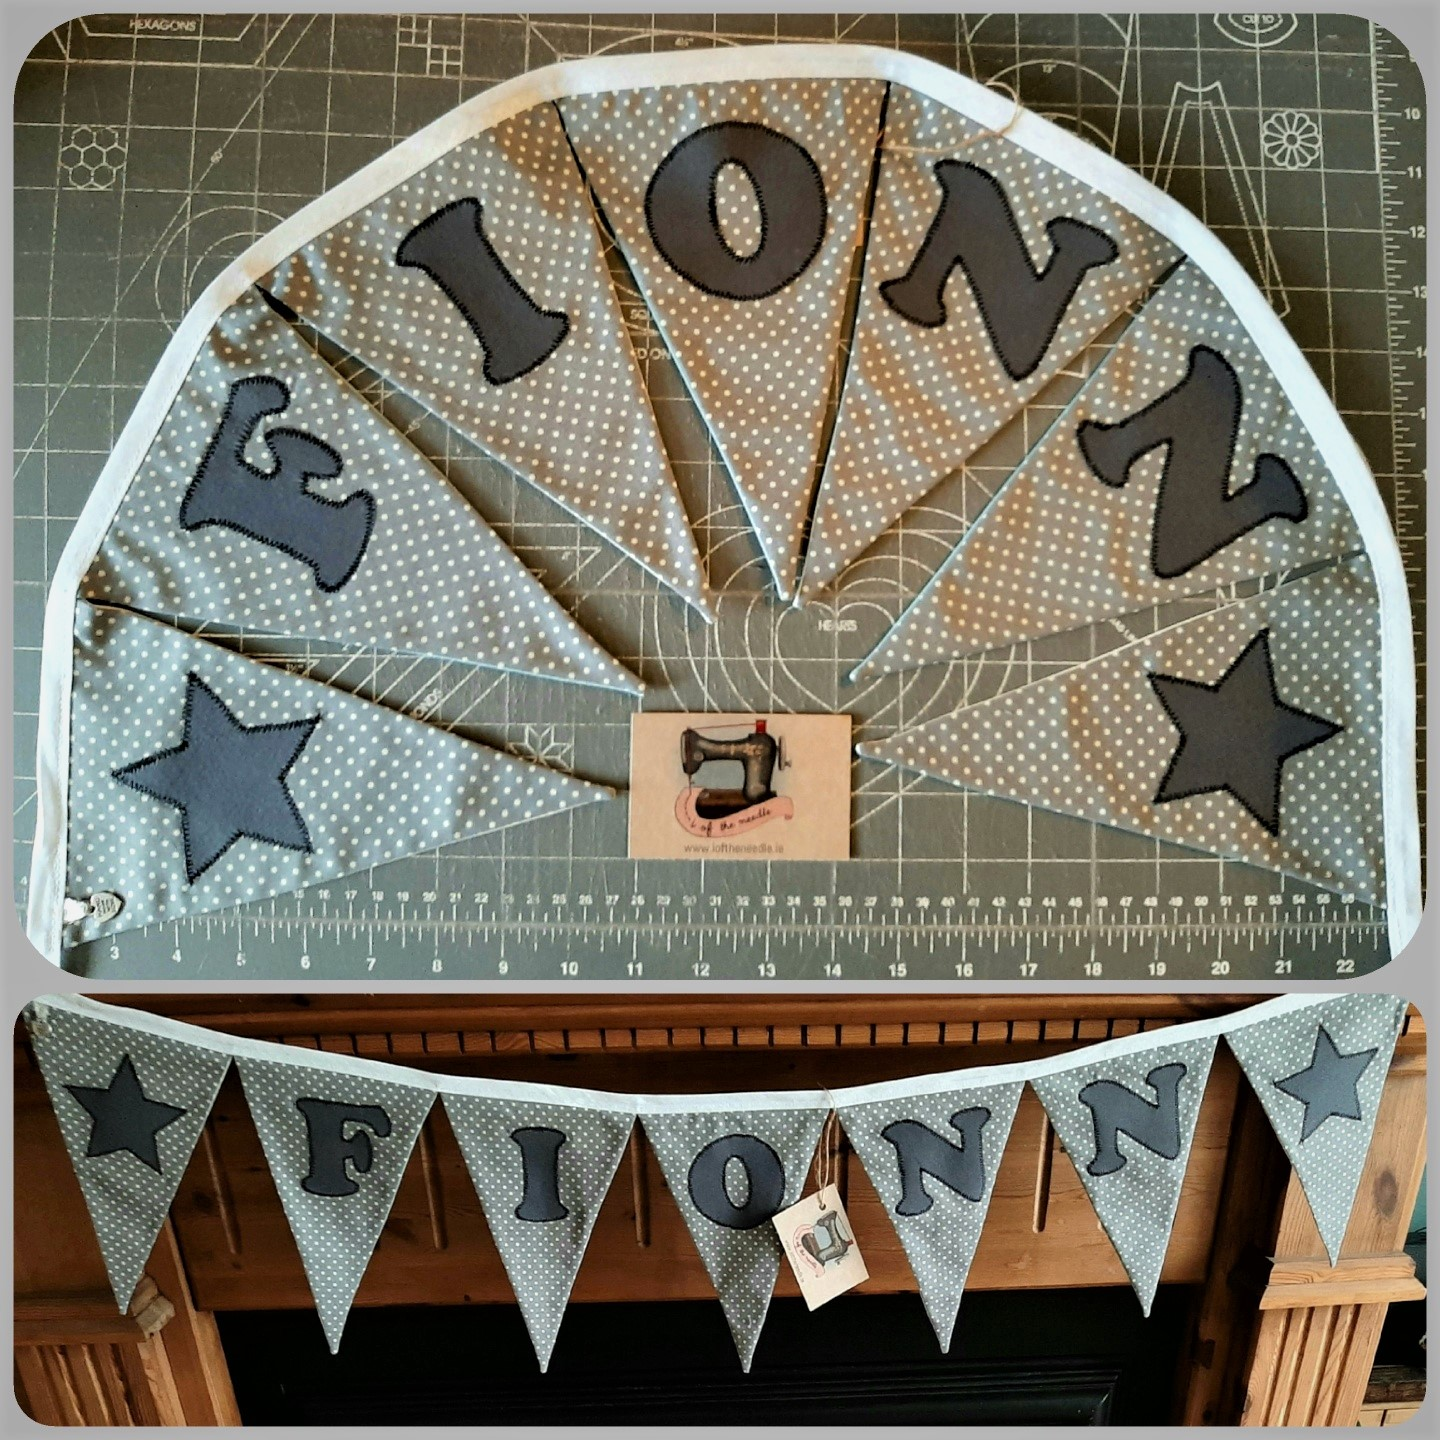 Personalised Bunting  FIONN with Star Motifs Image